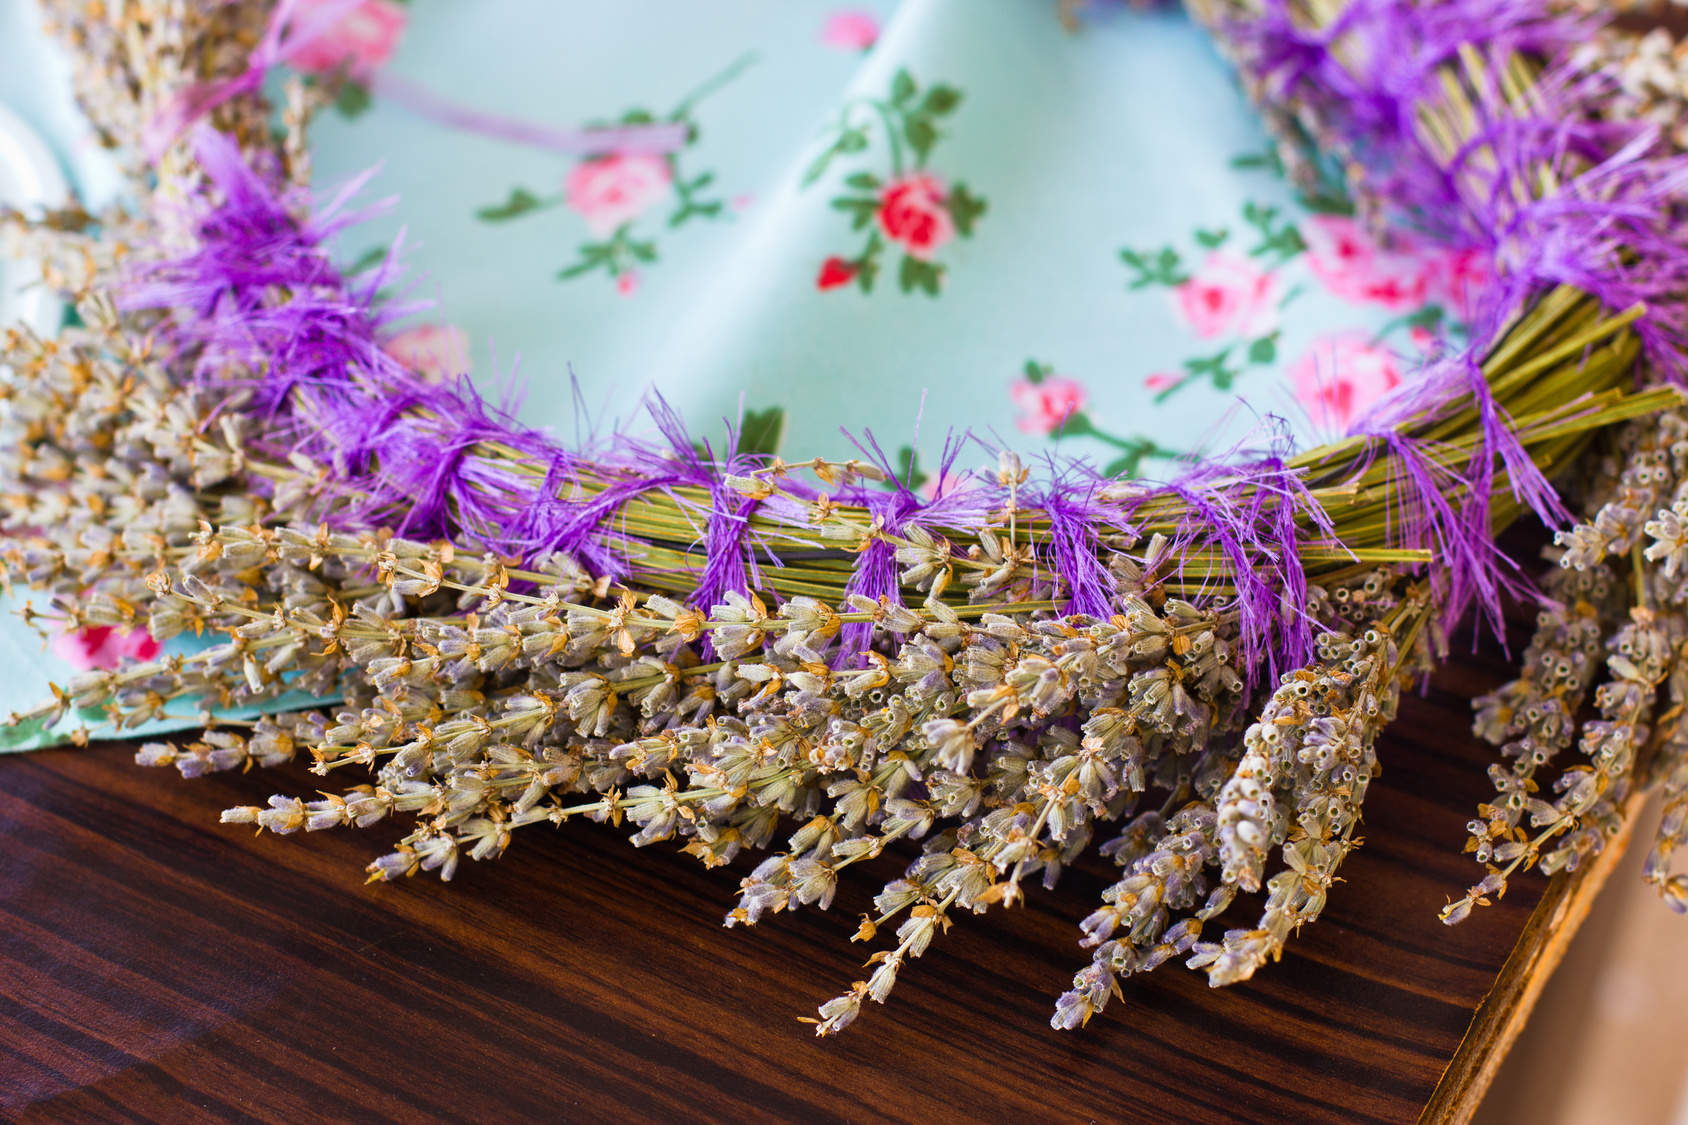 Hair ornament. A delicate wreath of dry lavender on blue tablecloth